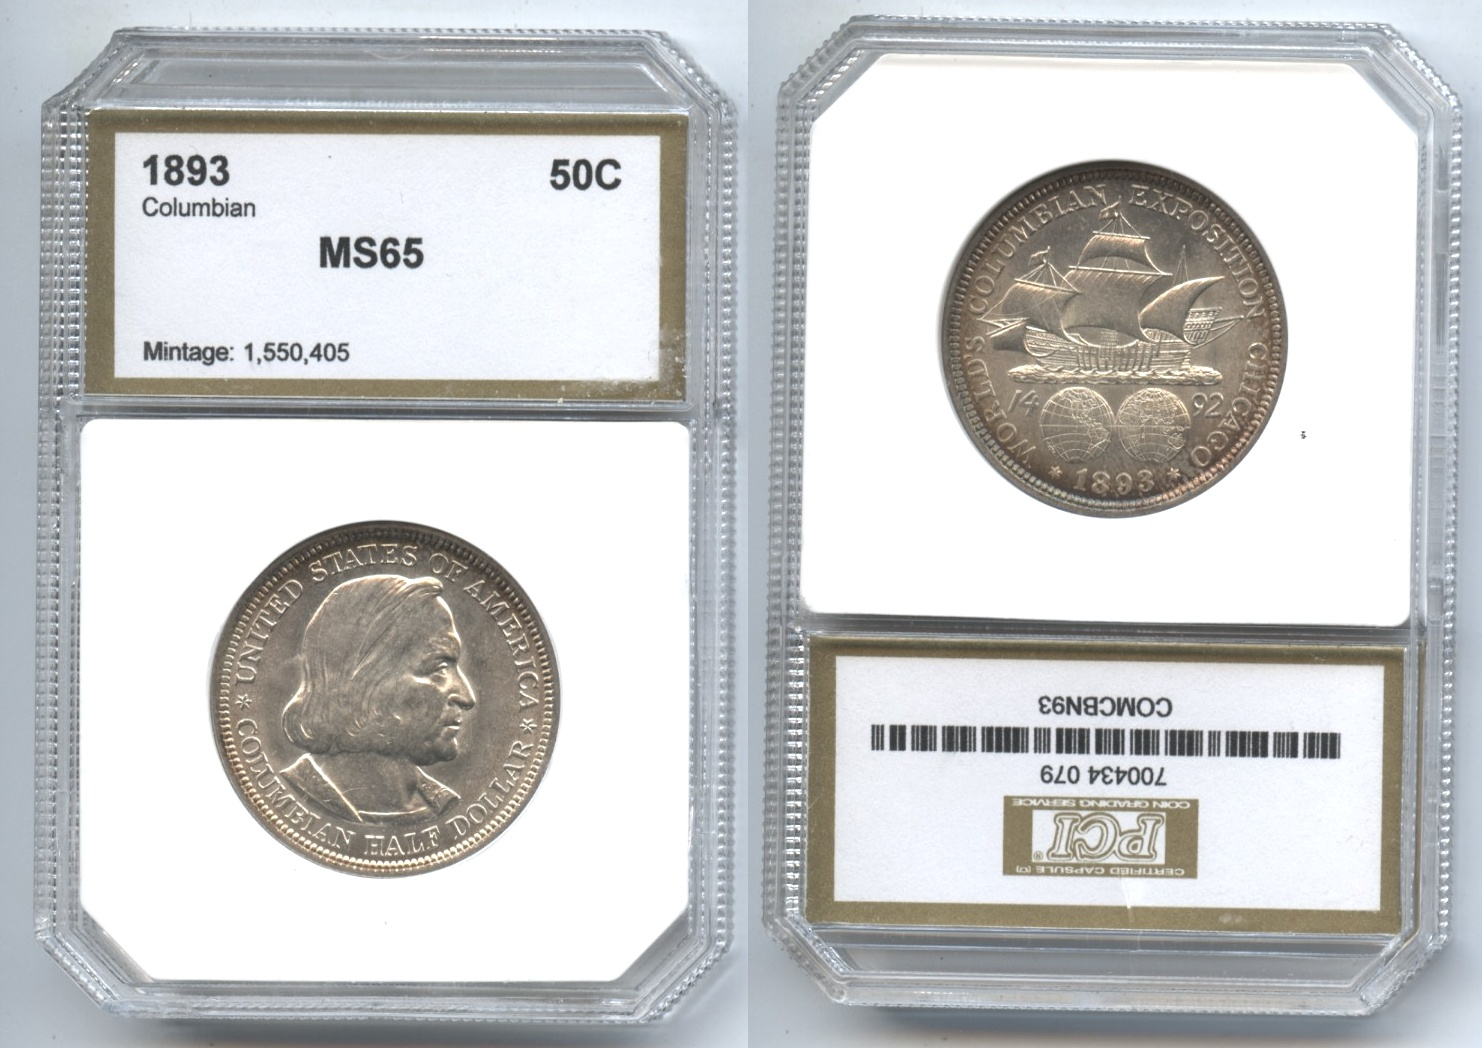 1893 Columbian Commemorative Half Dollar PCI MS-65 #a